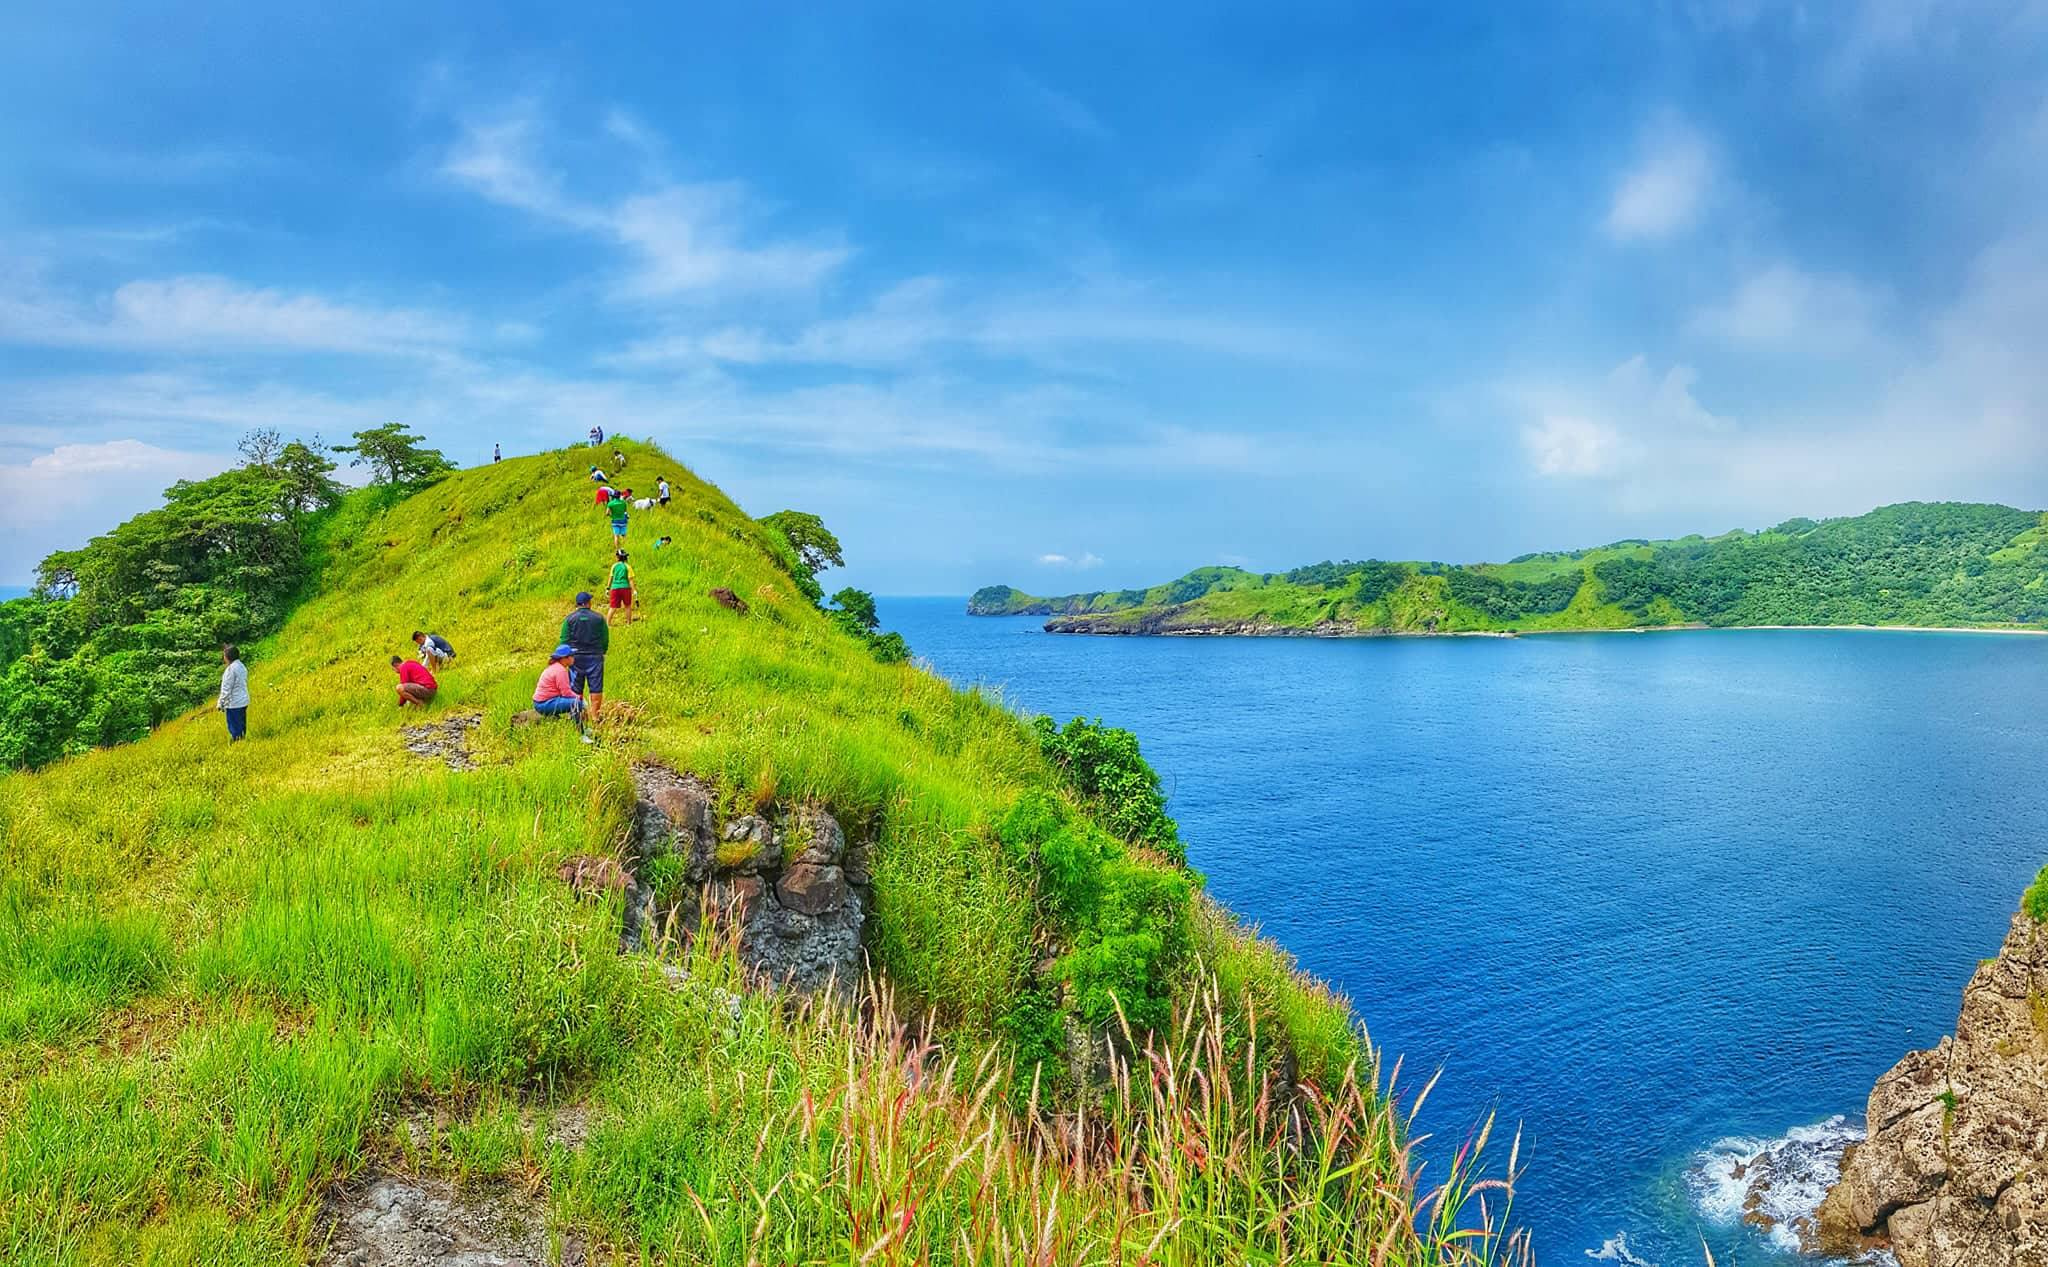 Beautyful Places Destination: Beautiful And Underrated: 8 PH Destinations To Visit In 2018